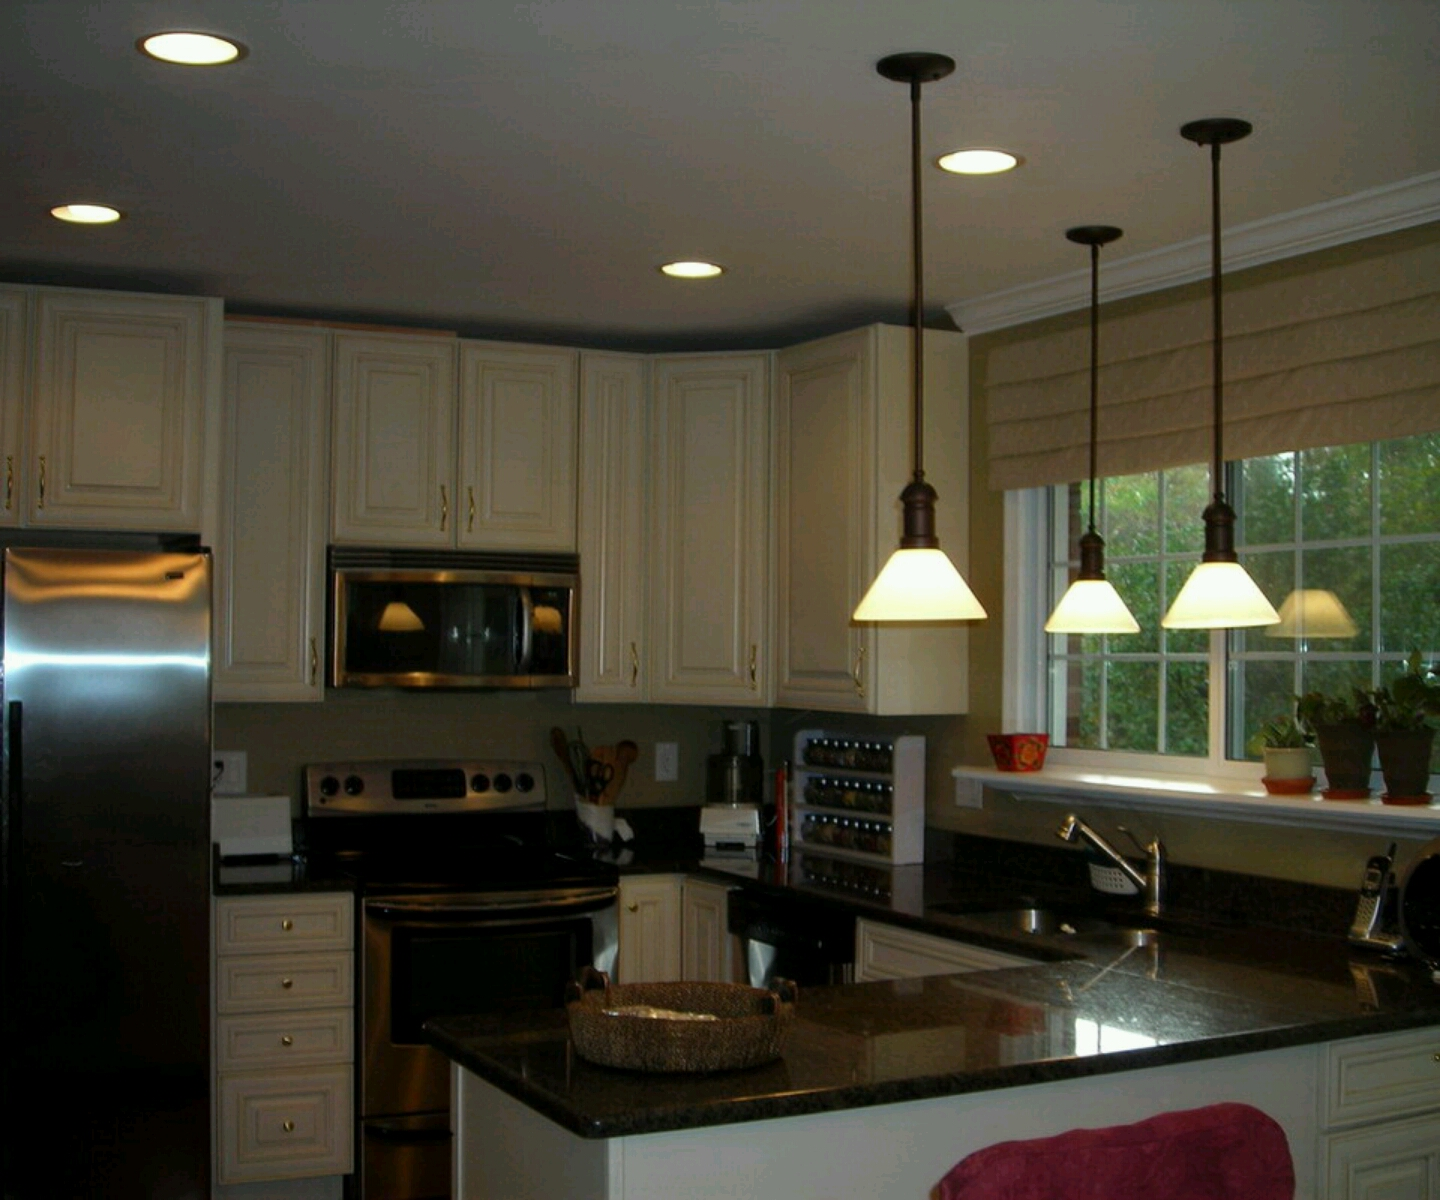 Cabinet Design Ideas For Kitchen ~ New home designs latest modern kitchen cabinet